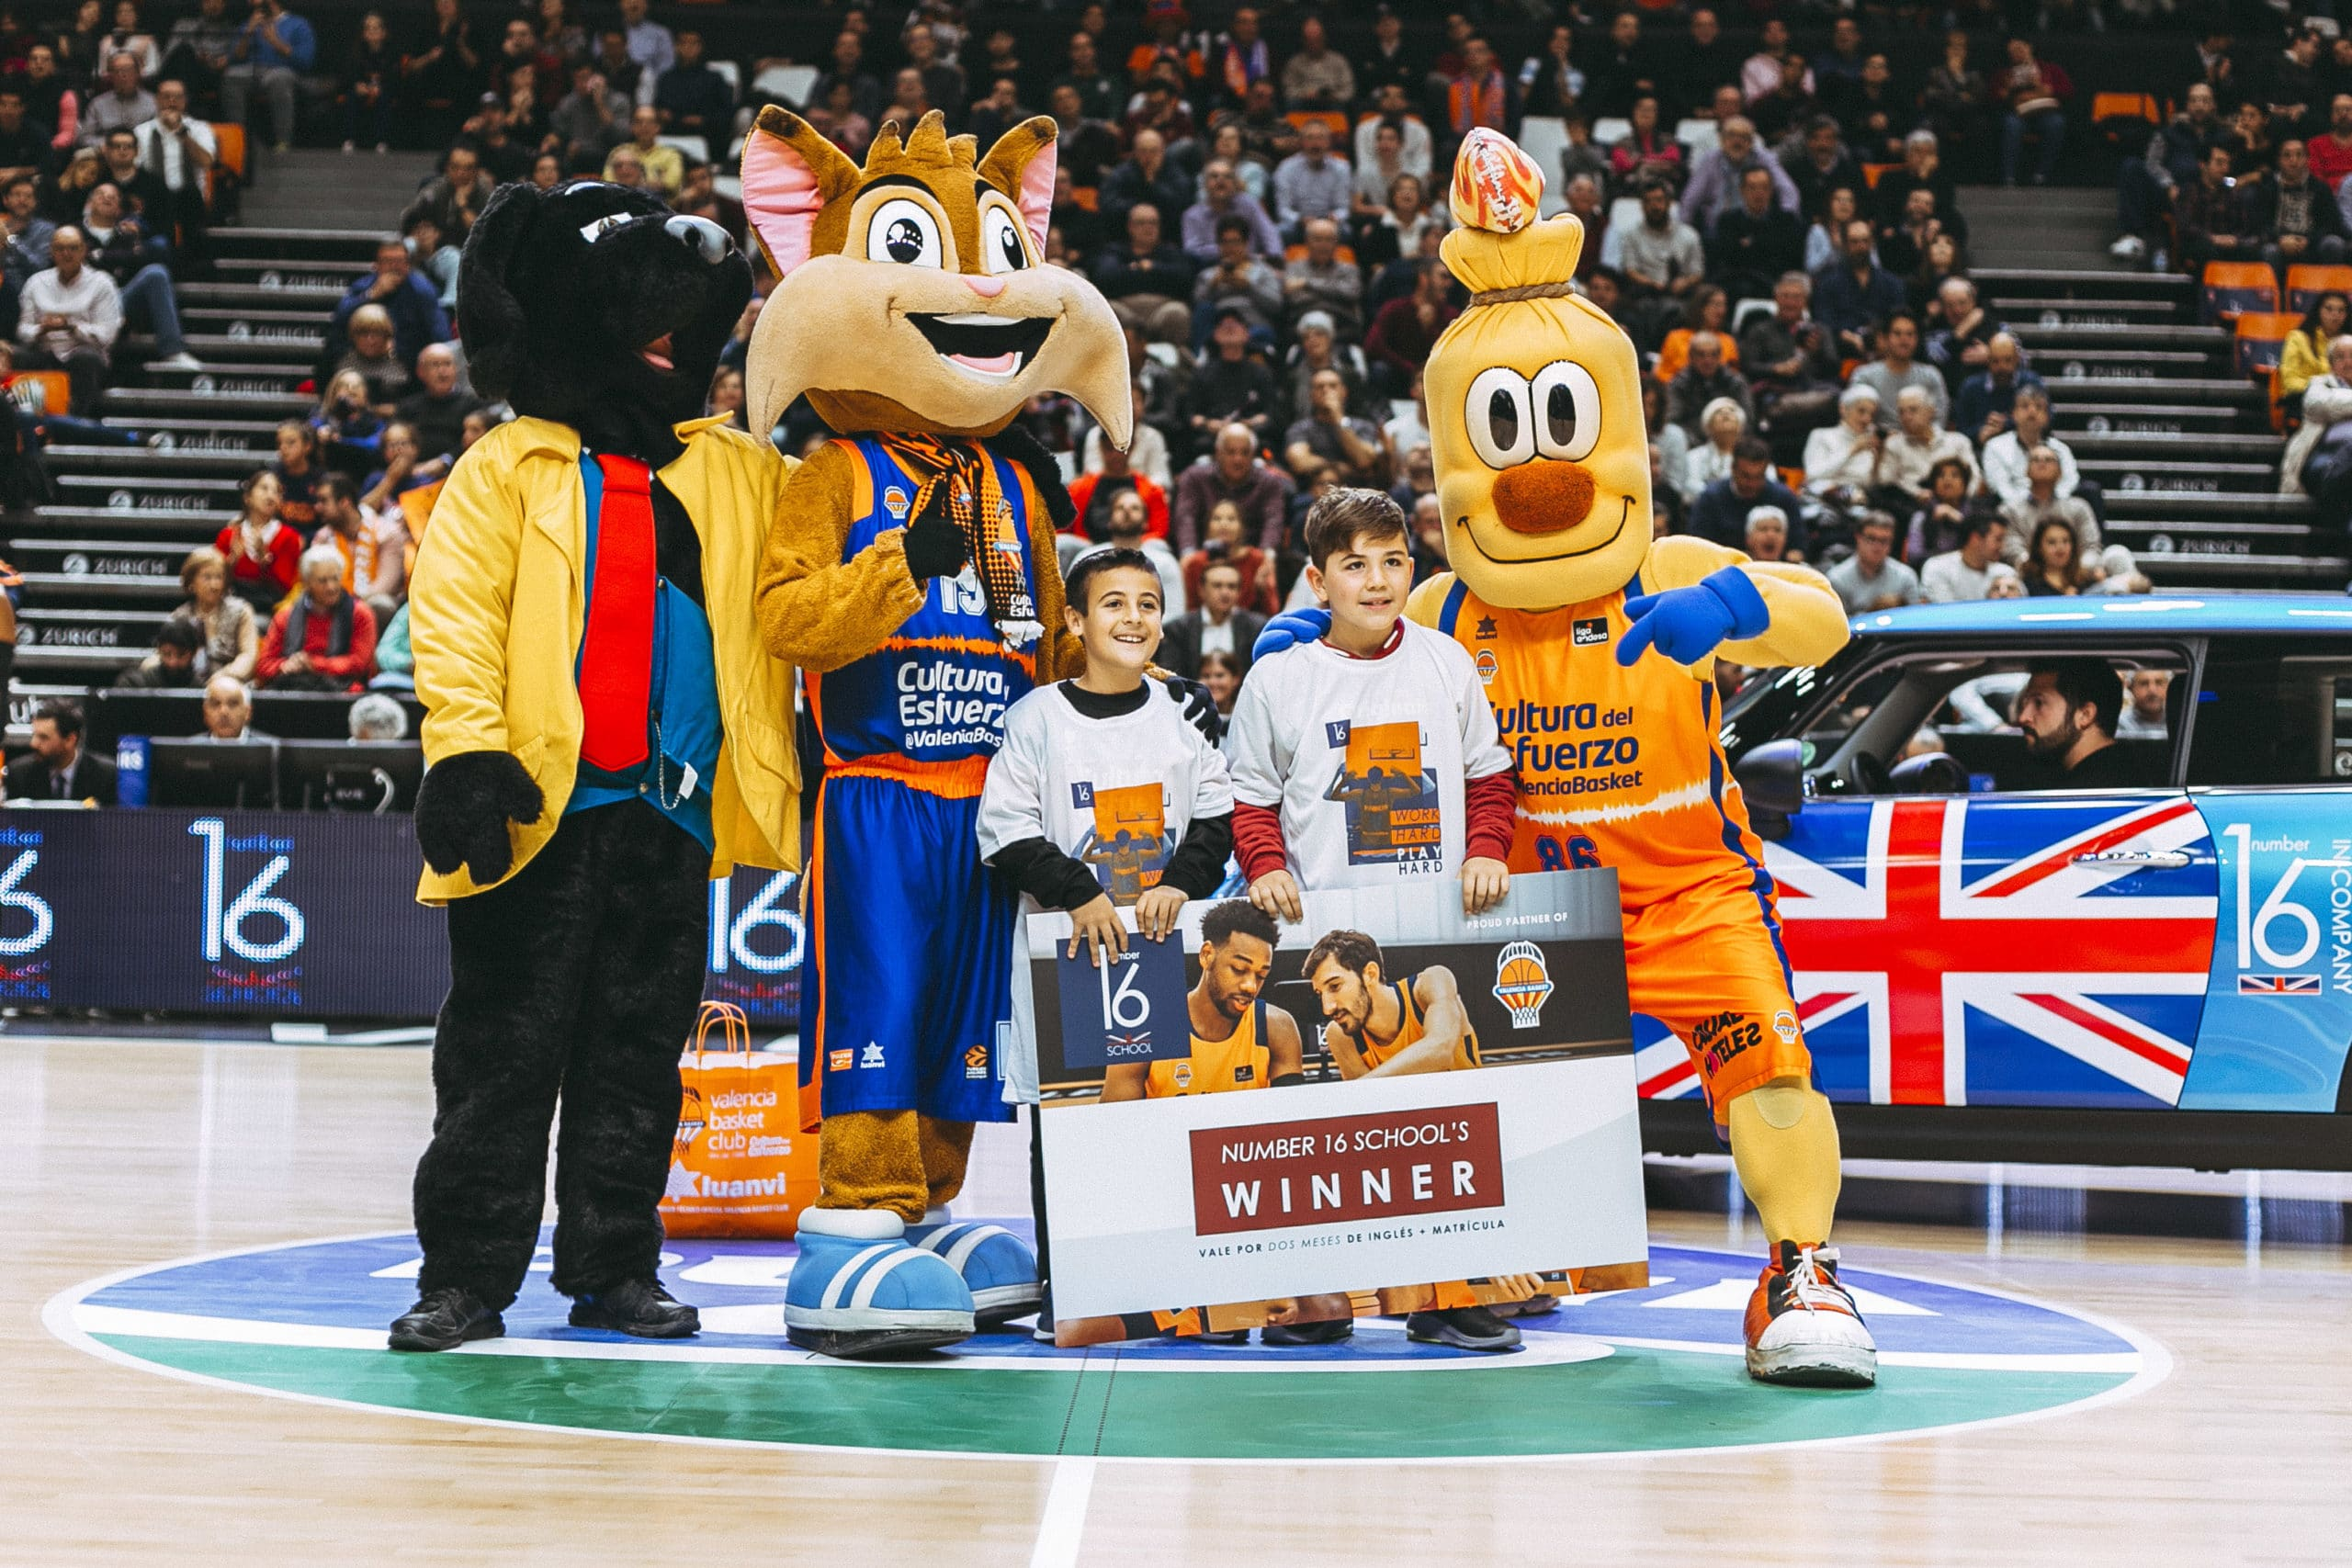 Number 16 School Valencia Basket